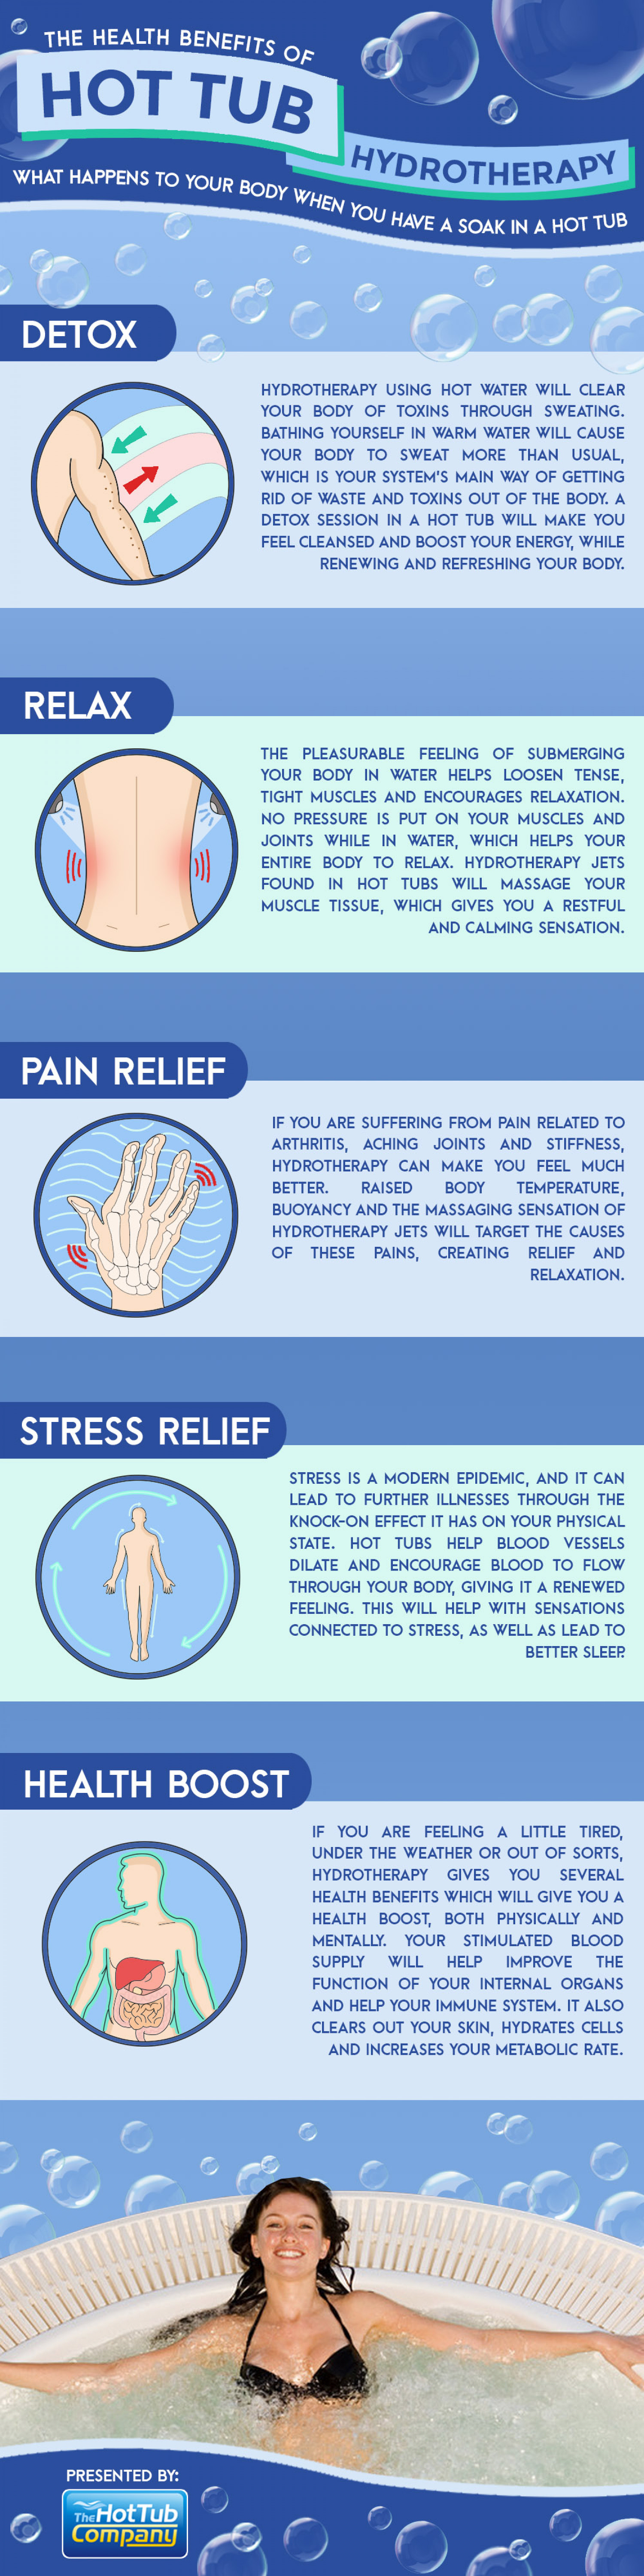 The Health Benefits of Hot Tub Hydrotherapy Infographic